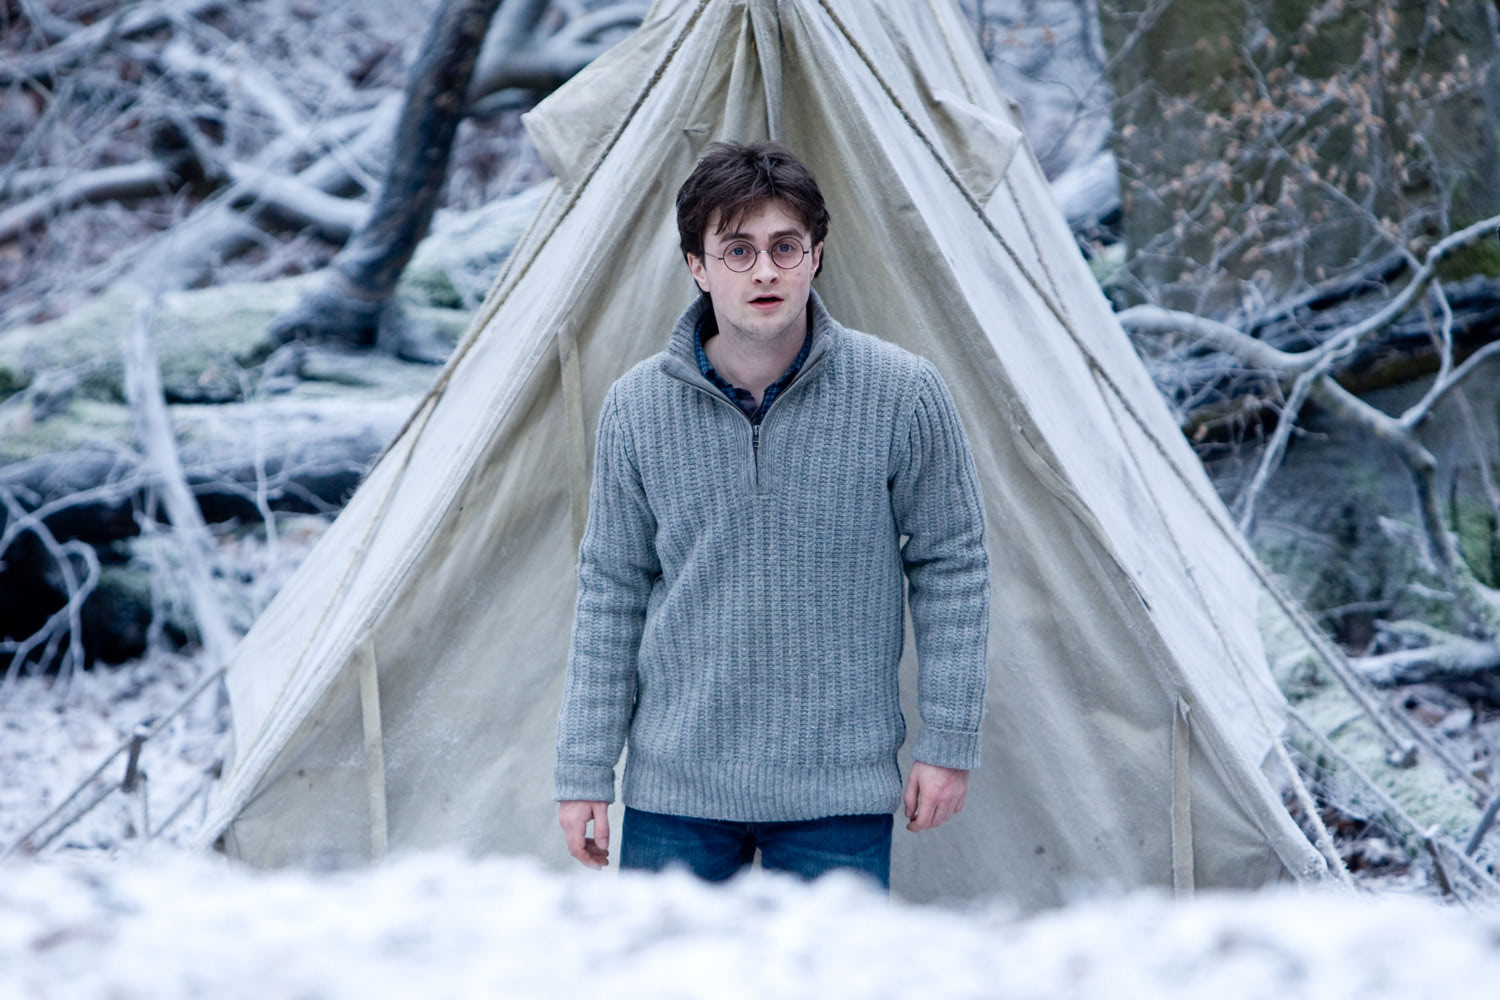 Harry camping in winter